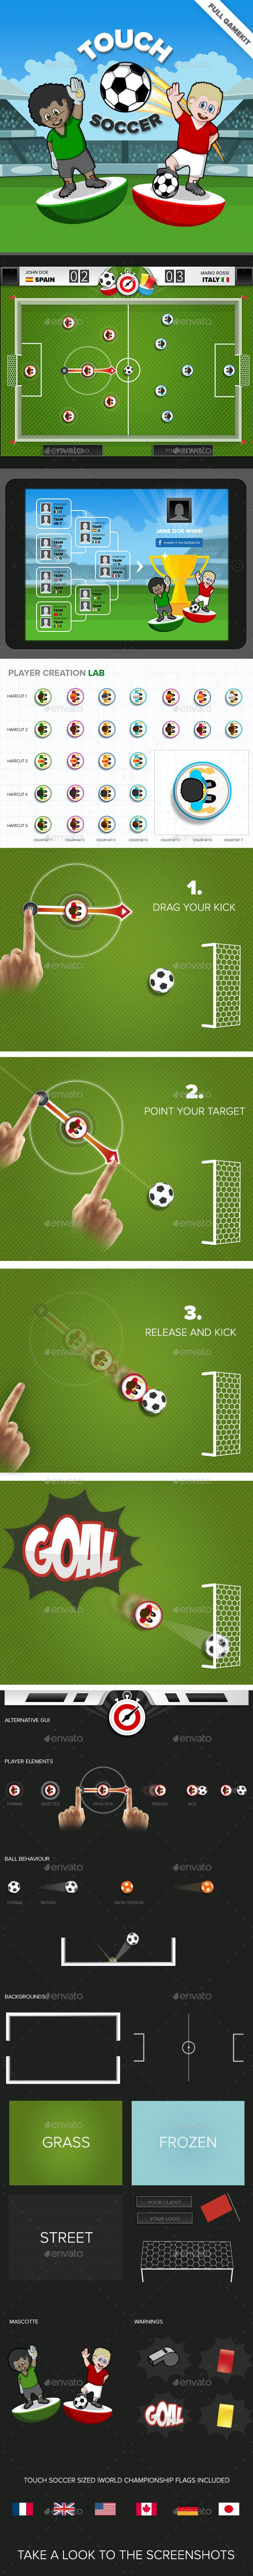 Touch Soccer Game Kit - Game Kits Game Assets